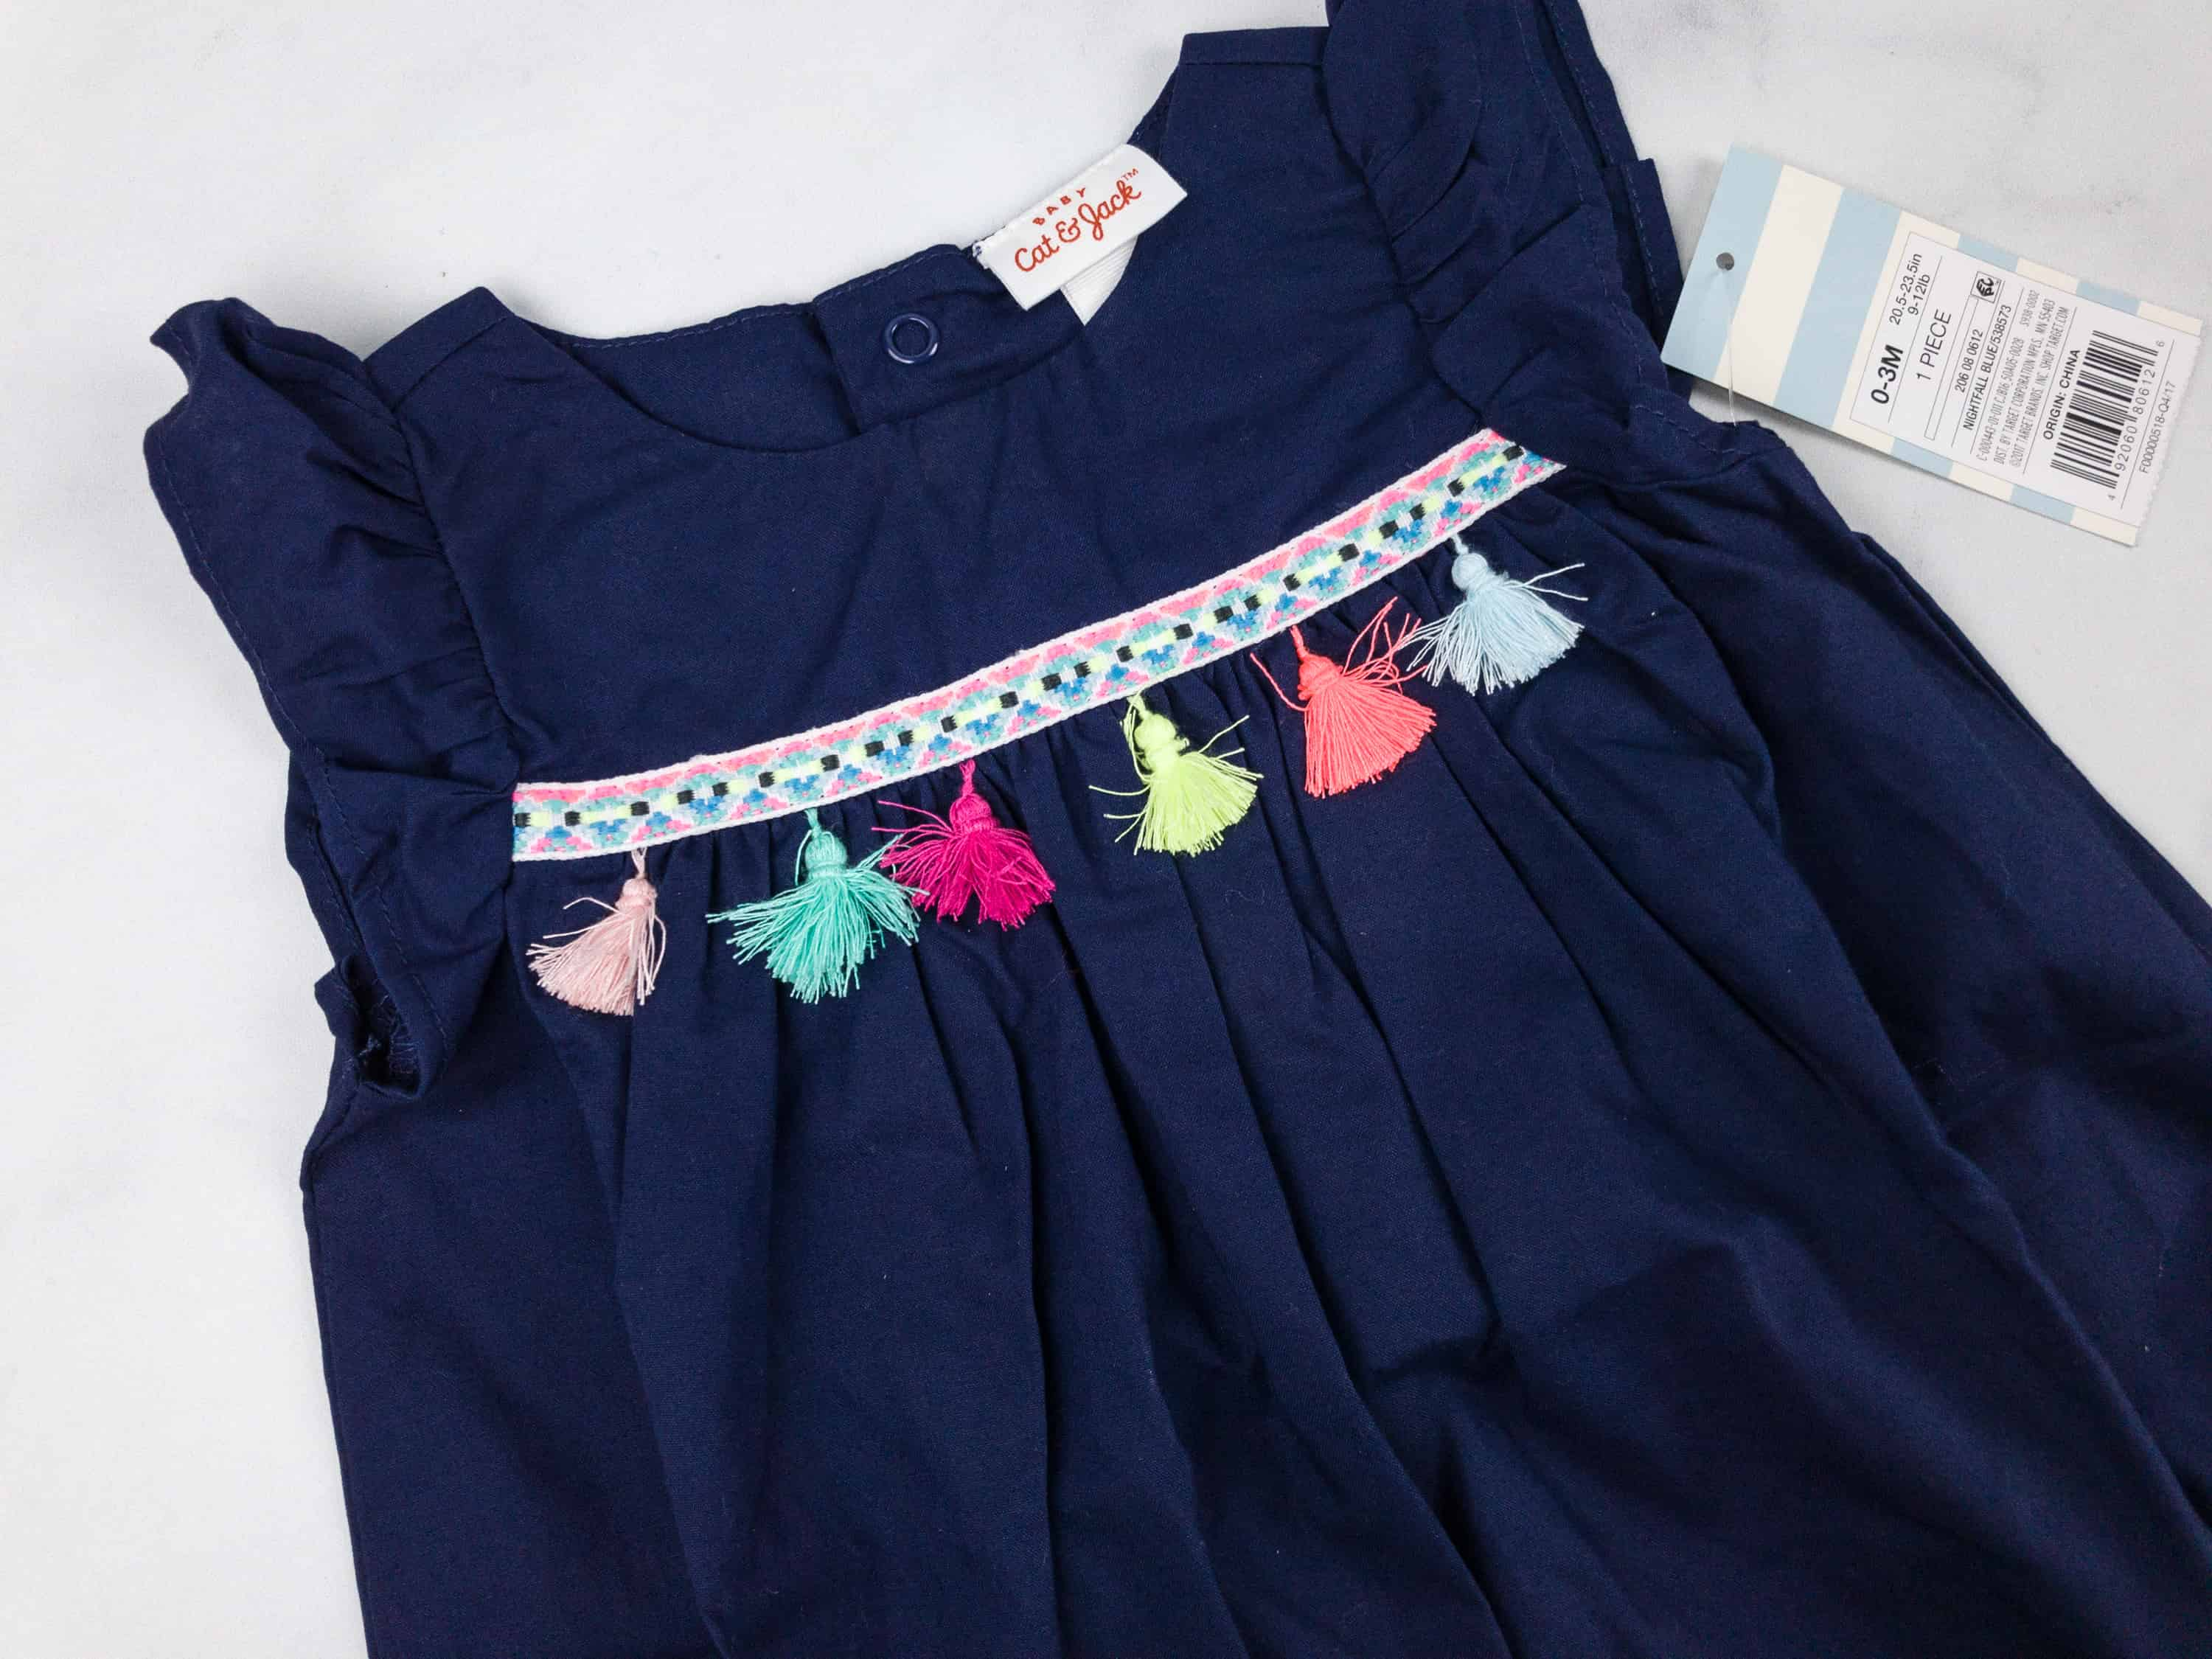 9bf9cabf3 This navy blue romper was decorated with tassels to make it look more fun  and colorful!